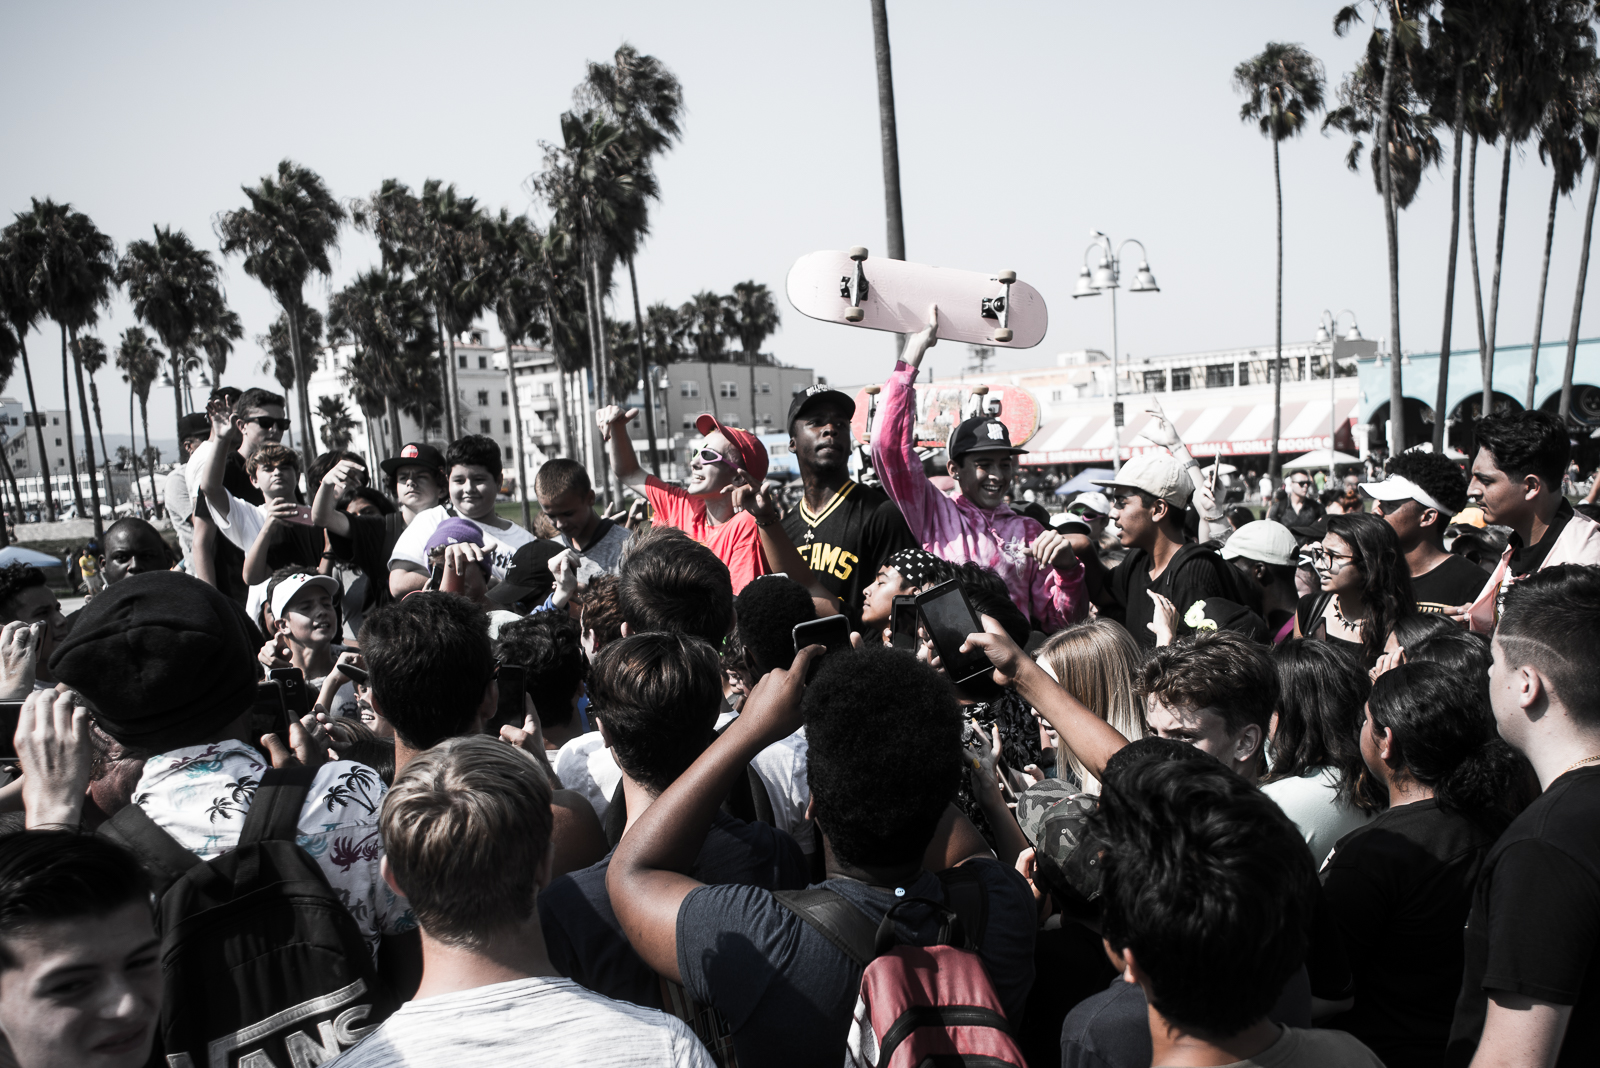 People shooting a rap video at Venice Beach, Ca